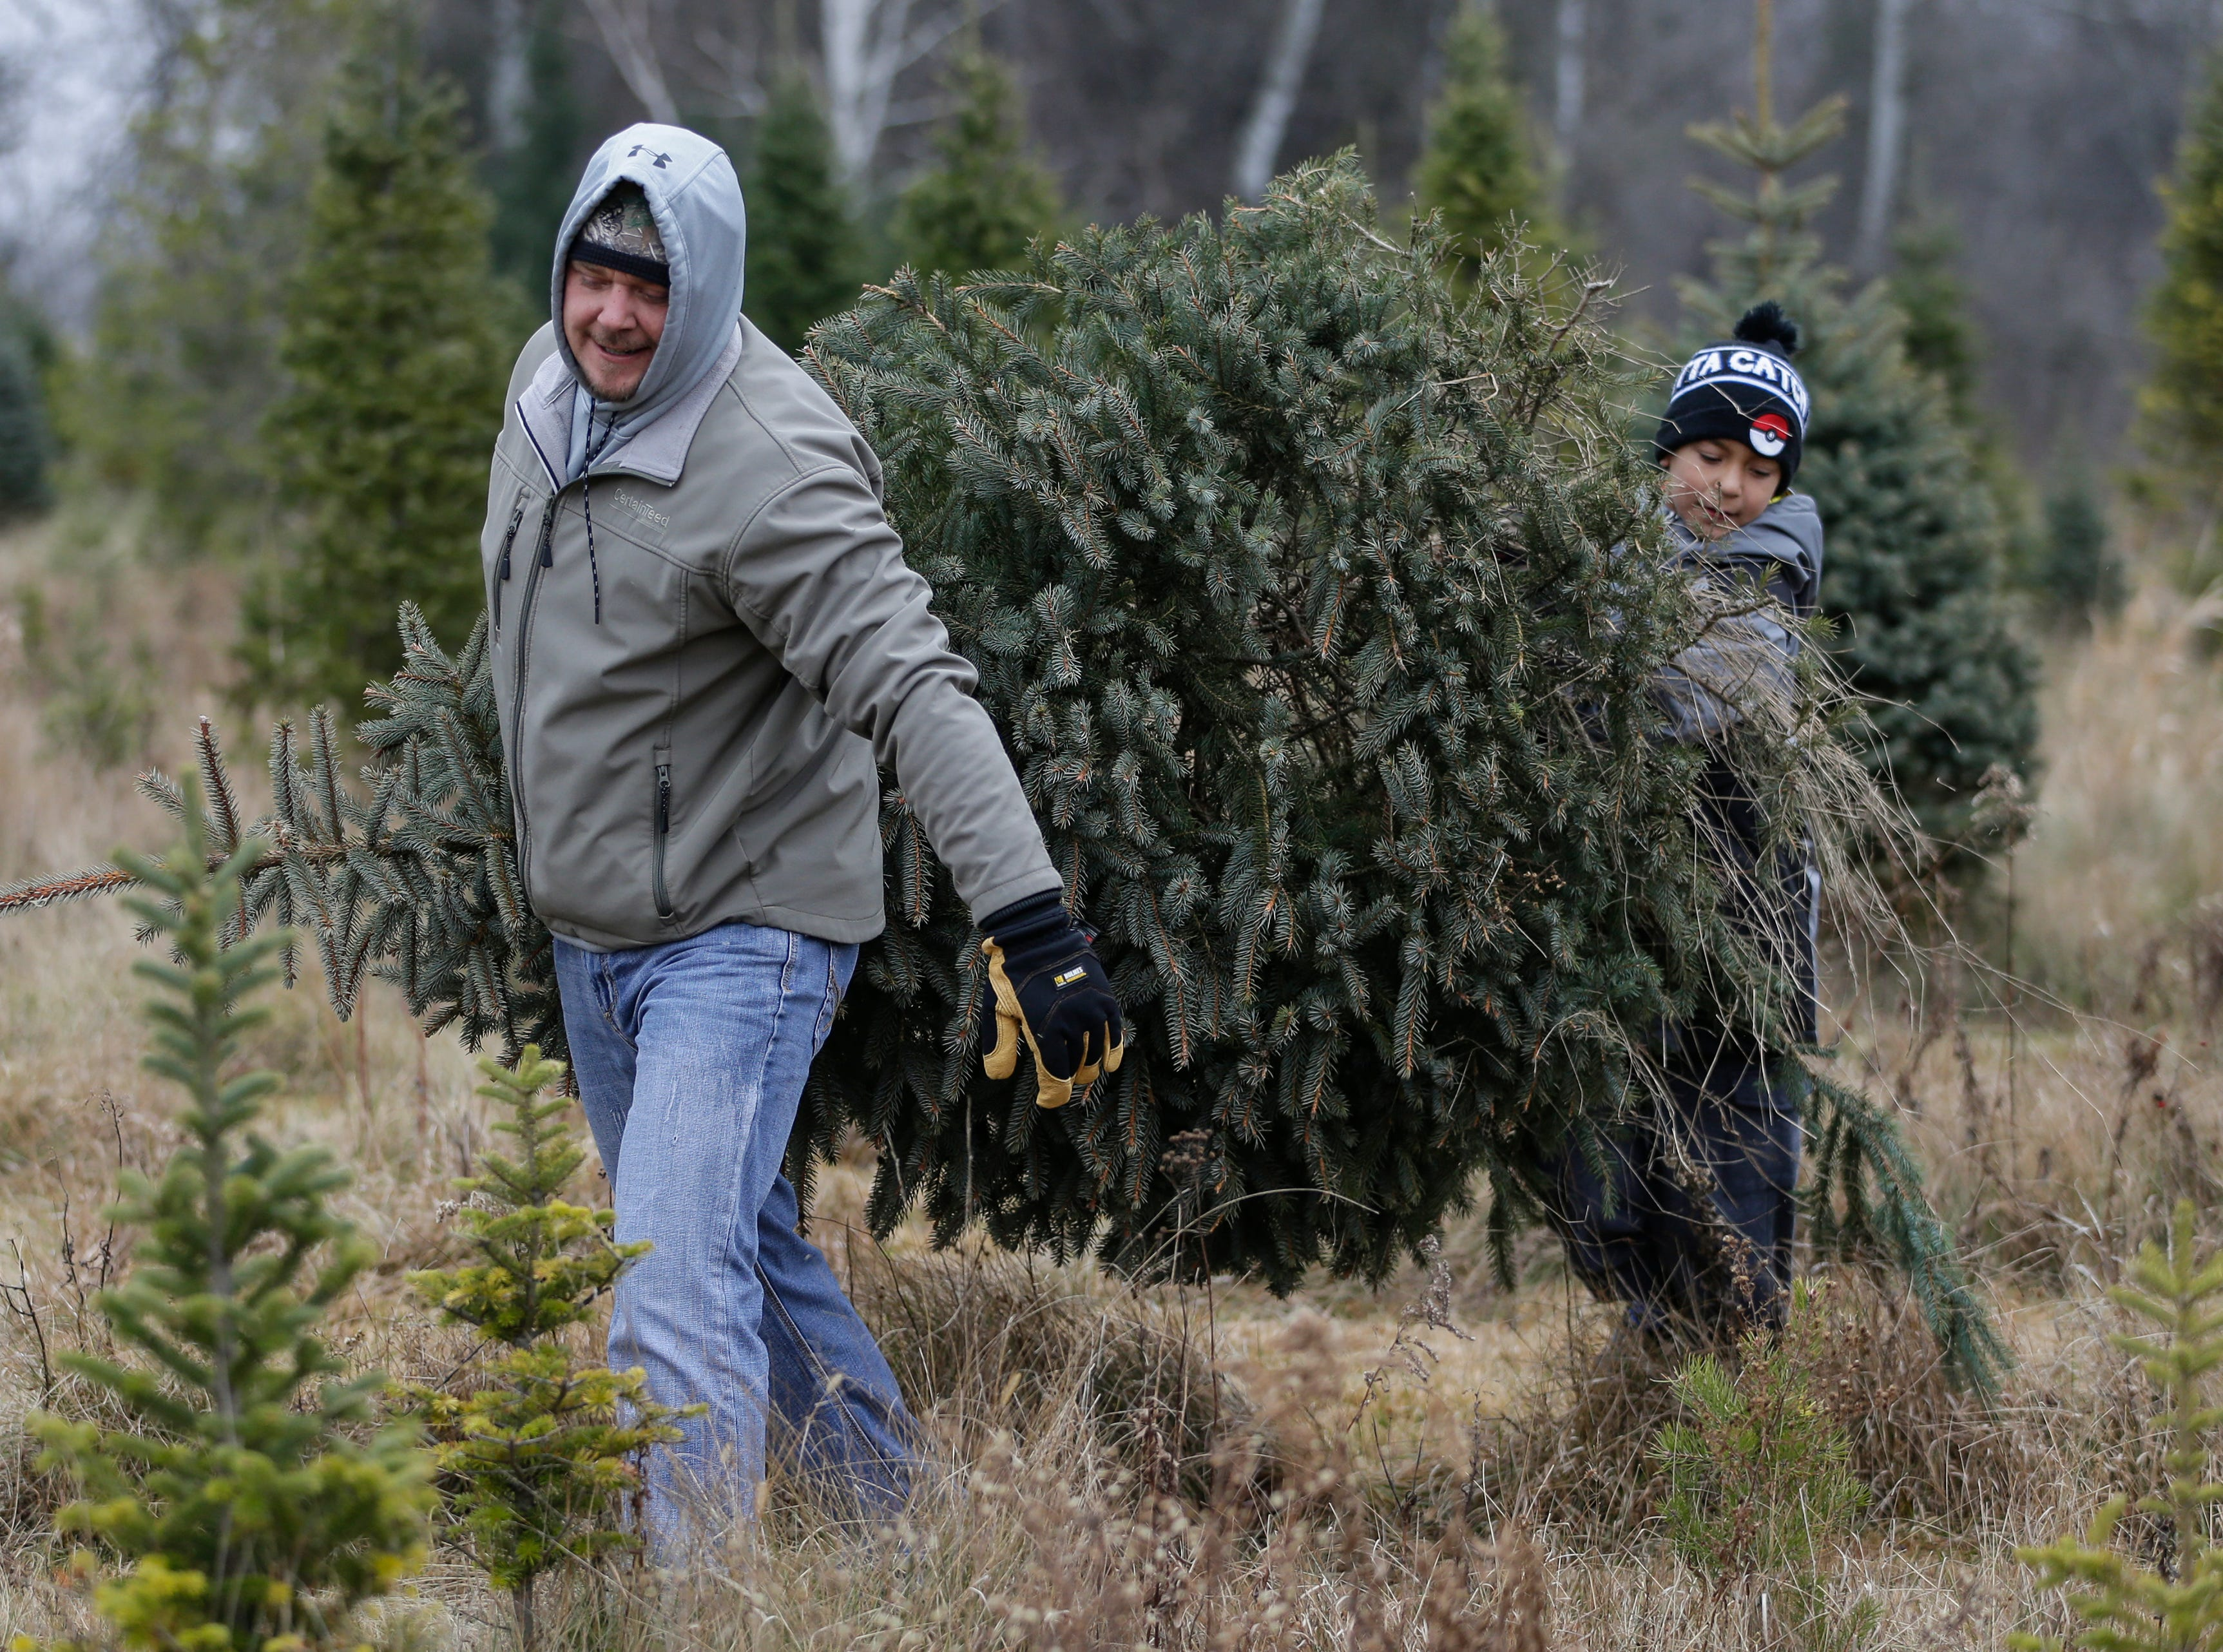 Andy Zigmunt, of Manitowoc, carries a freshly cut Christmas tree with his son Andrew, 11, at Taylor Trees Saturday, December 1, 2018, in Mishicot, Wis. Joshua Clark/USA TODAY NETWORK-Wisconsin